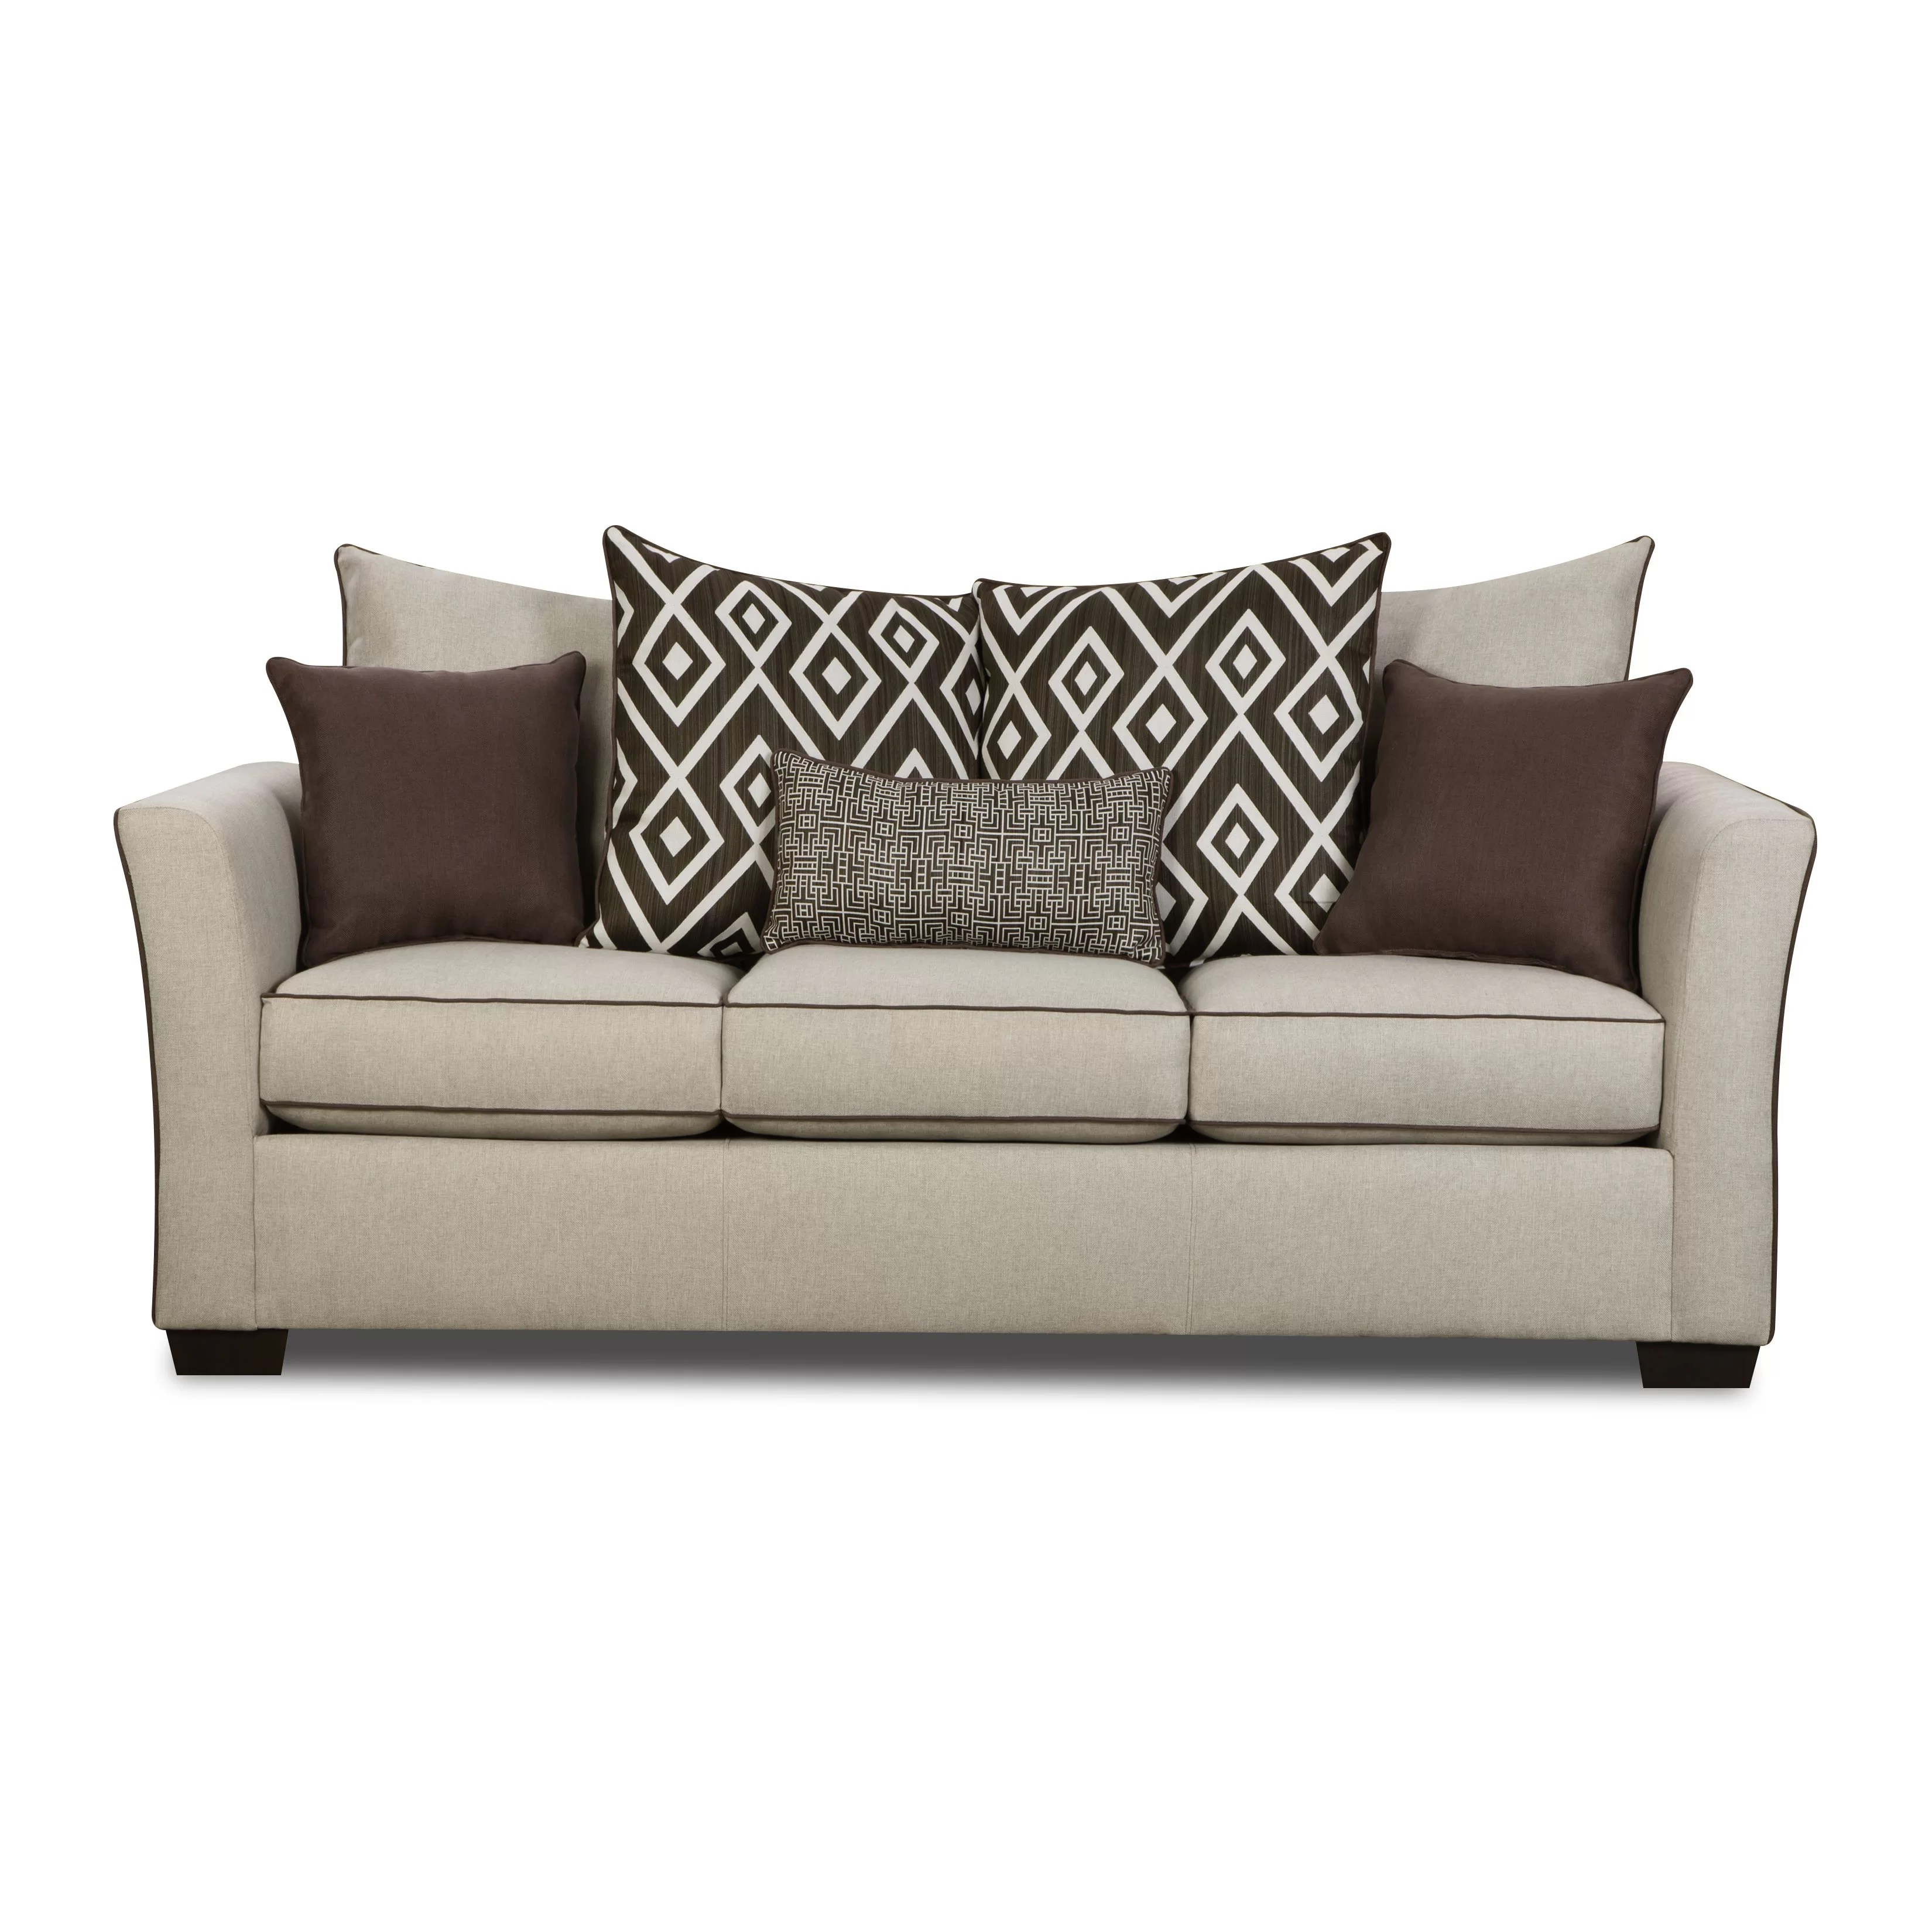 Darby Home Co Caldwell Sofa by Simmons Upholstery